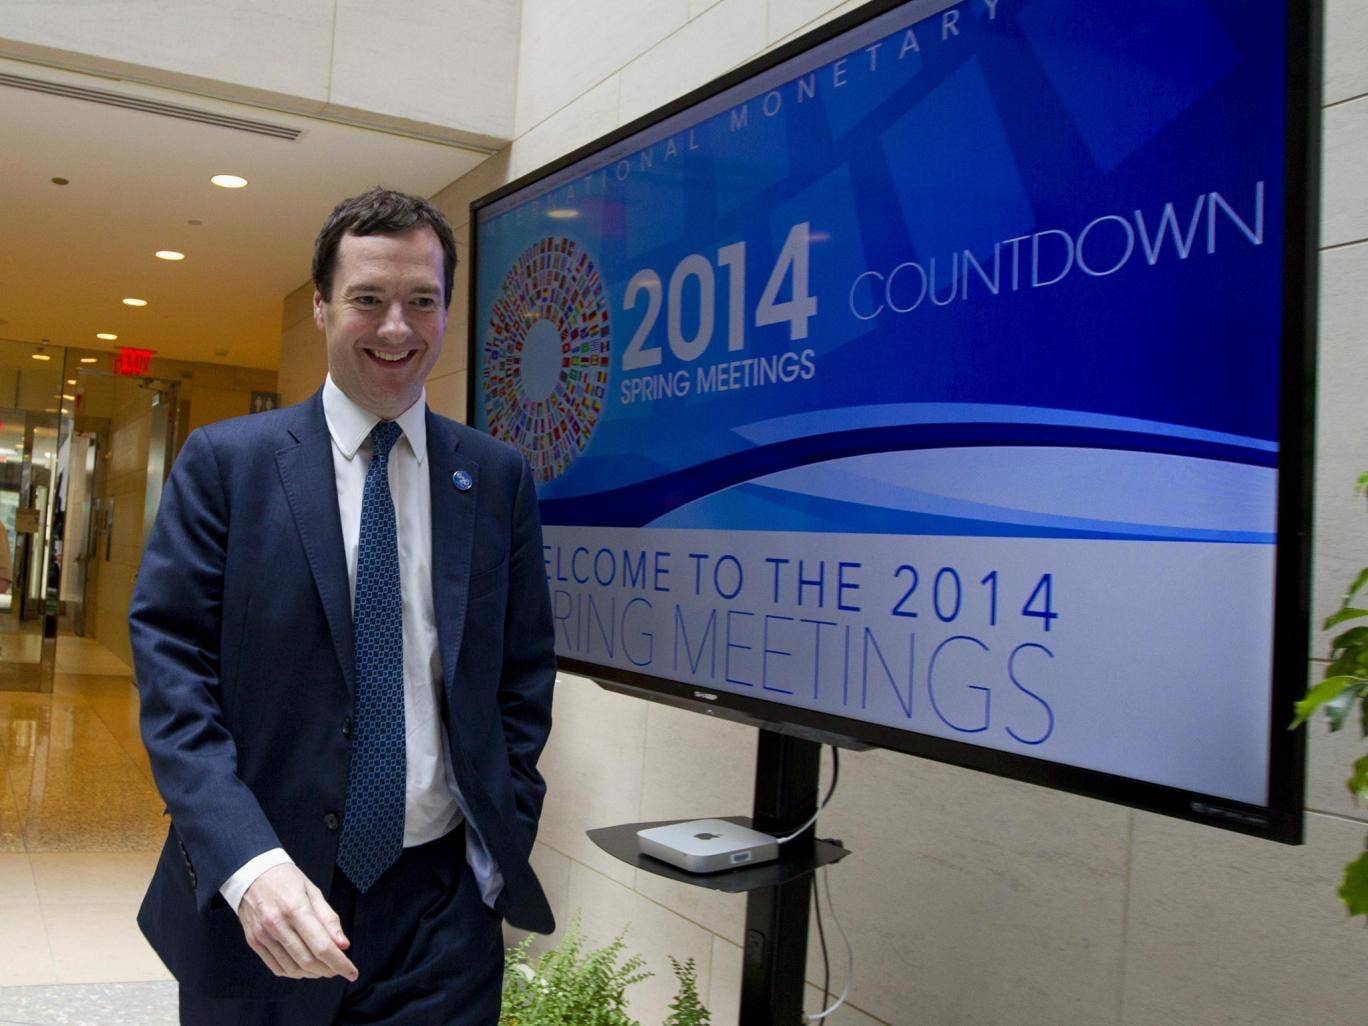 The Chancellor plans to crack down hard on tax evasion and those hiding money in tax havens